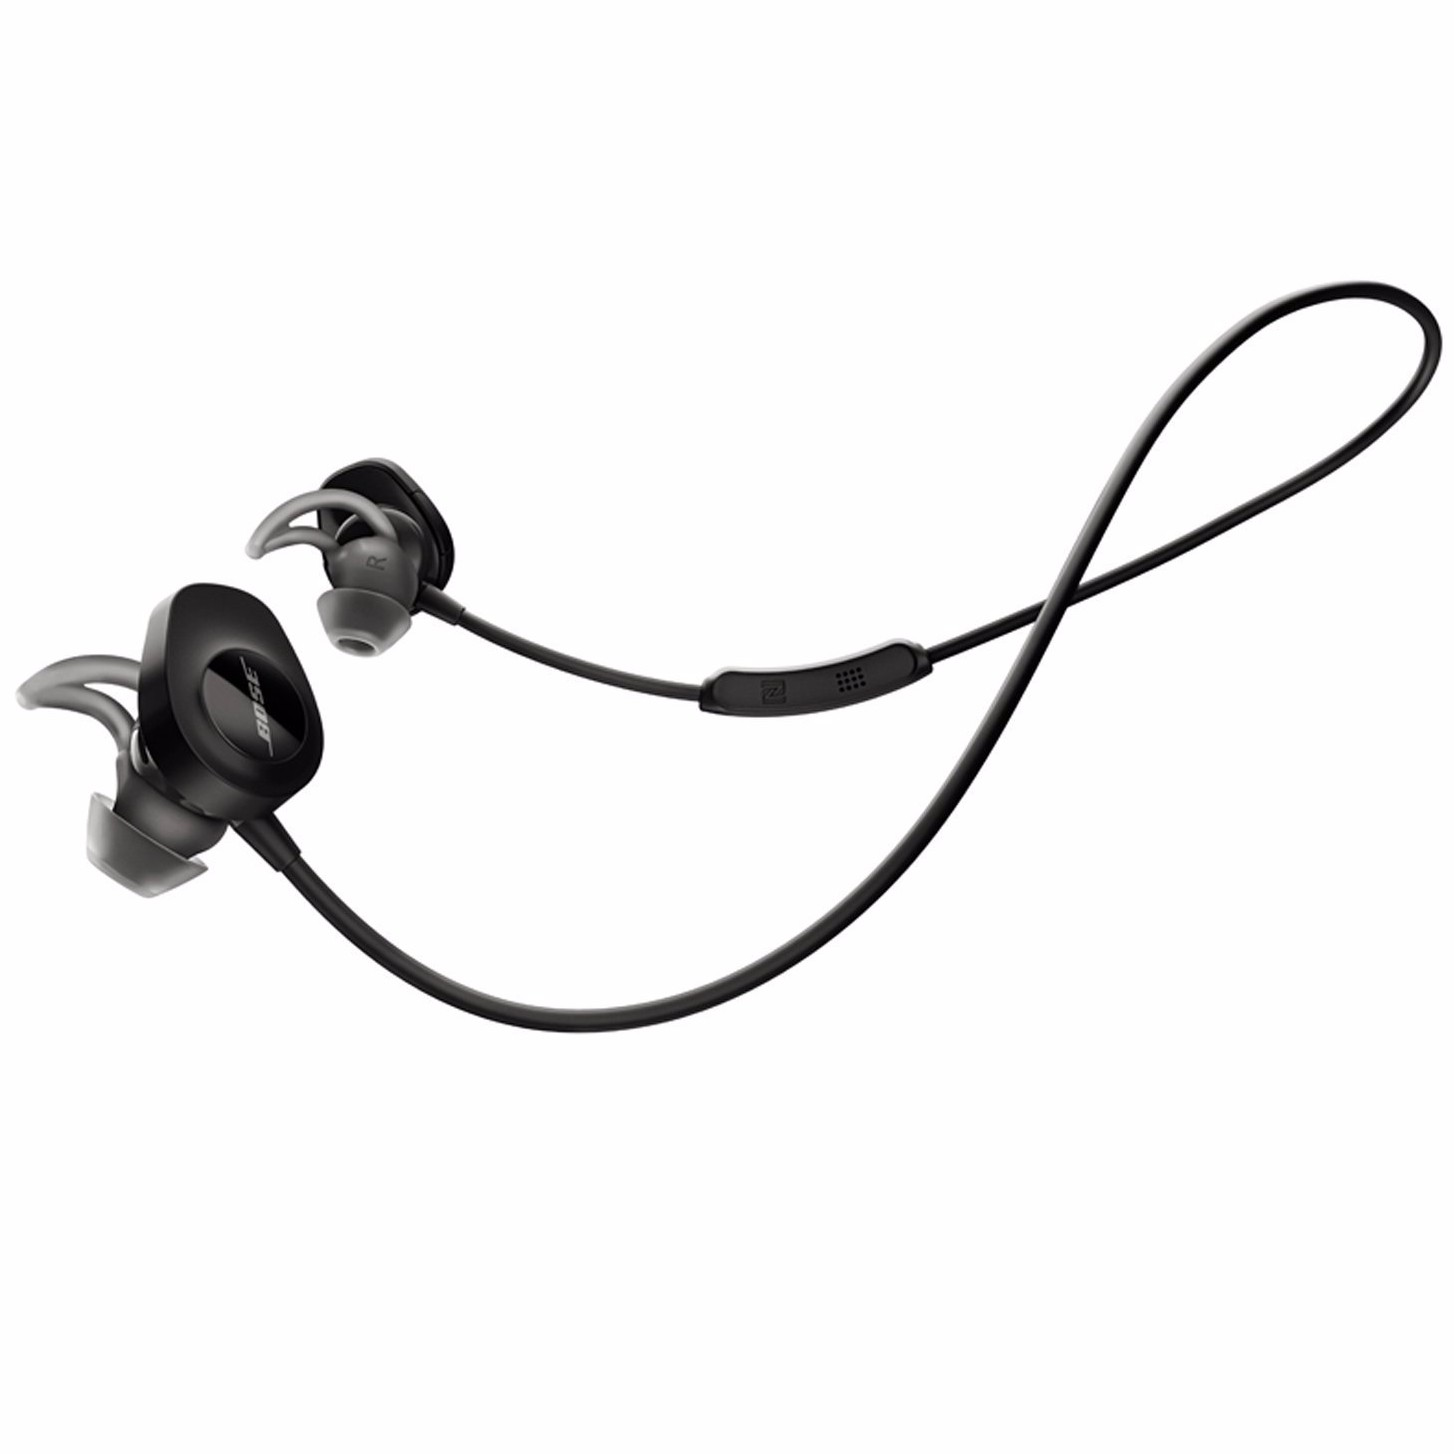 Great Bluetooth Earbuds